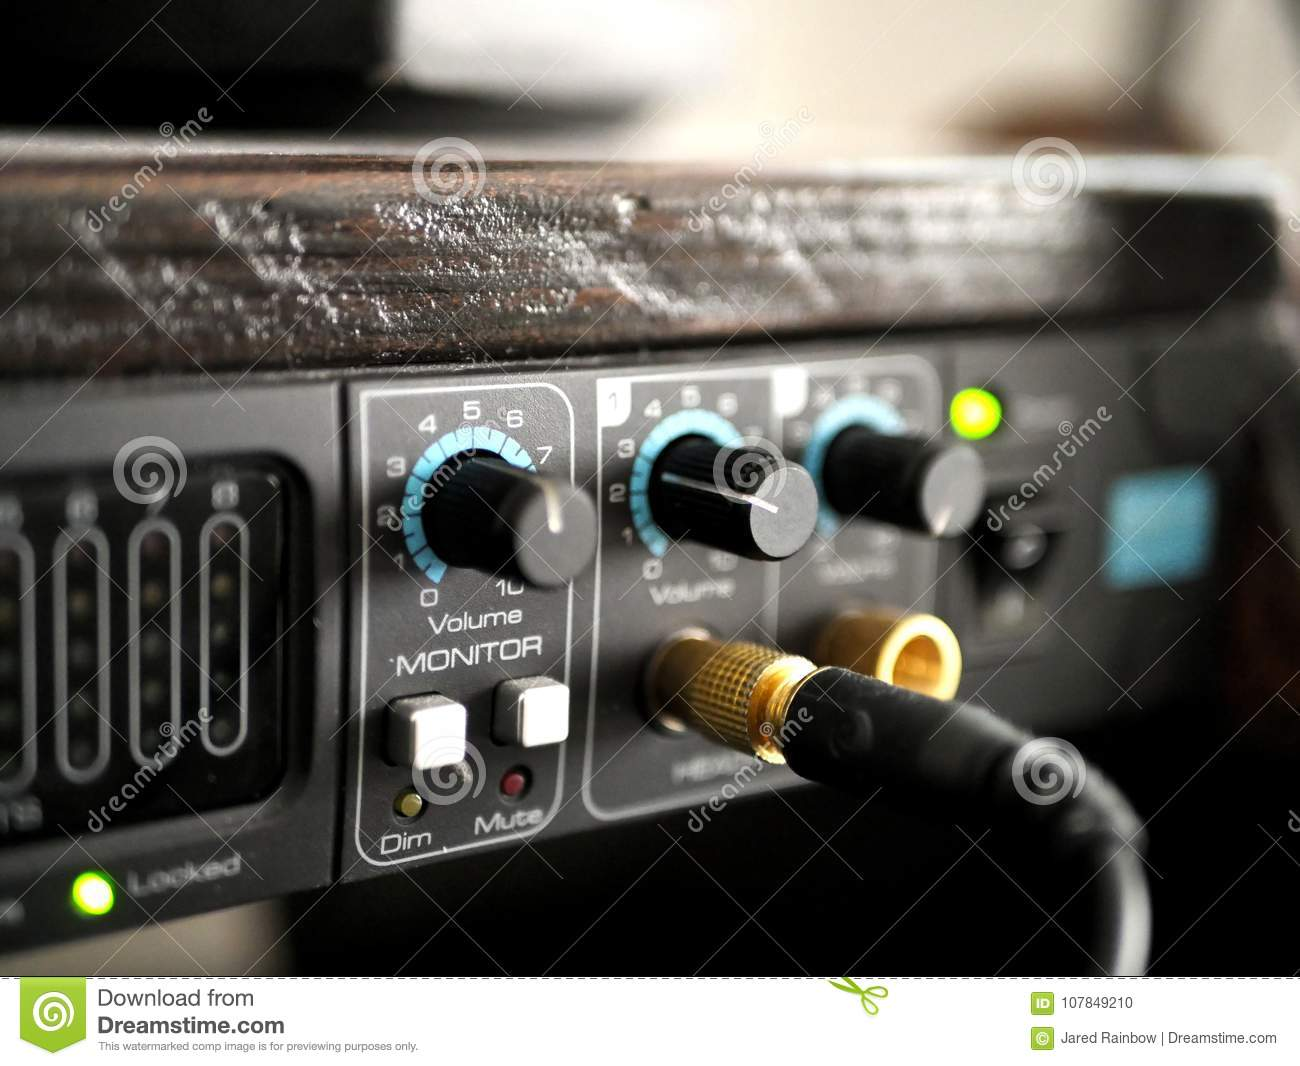 audio interface in music recording studio stock photo image of interface music 107849210. Black Bedroom Furniture Sets. Home Design Ideas